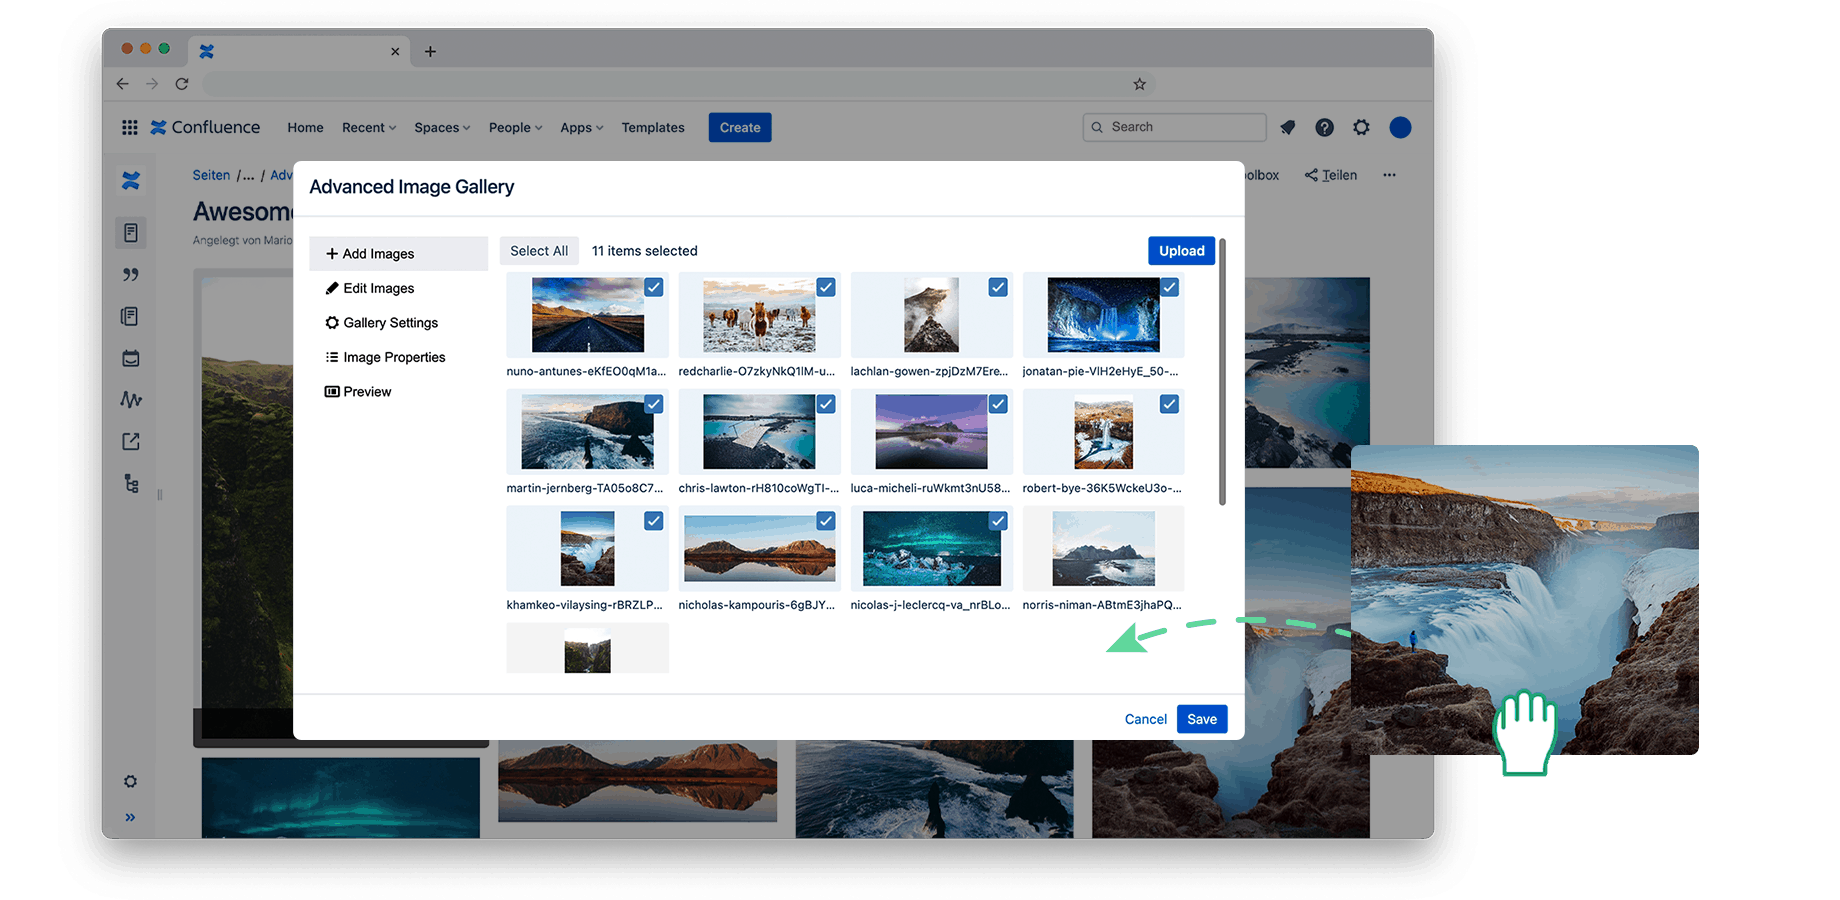 Easy drag and drop images to Confluence.